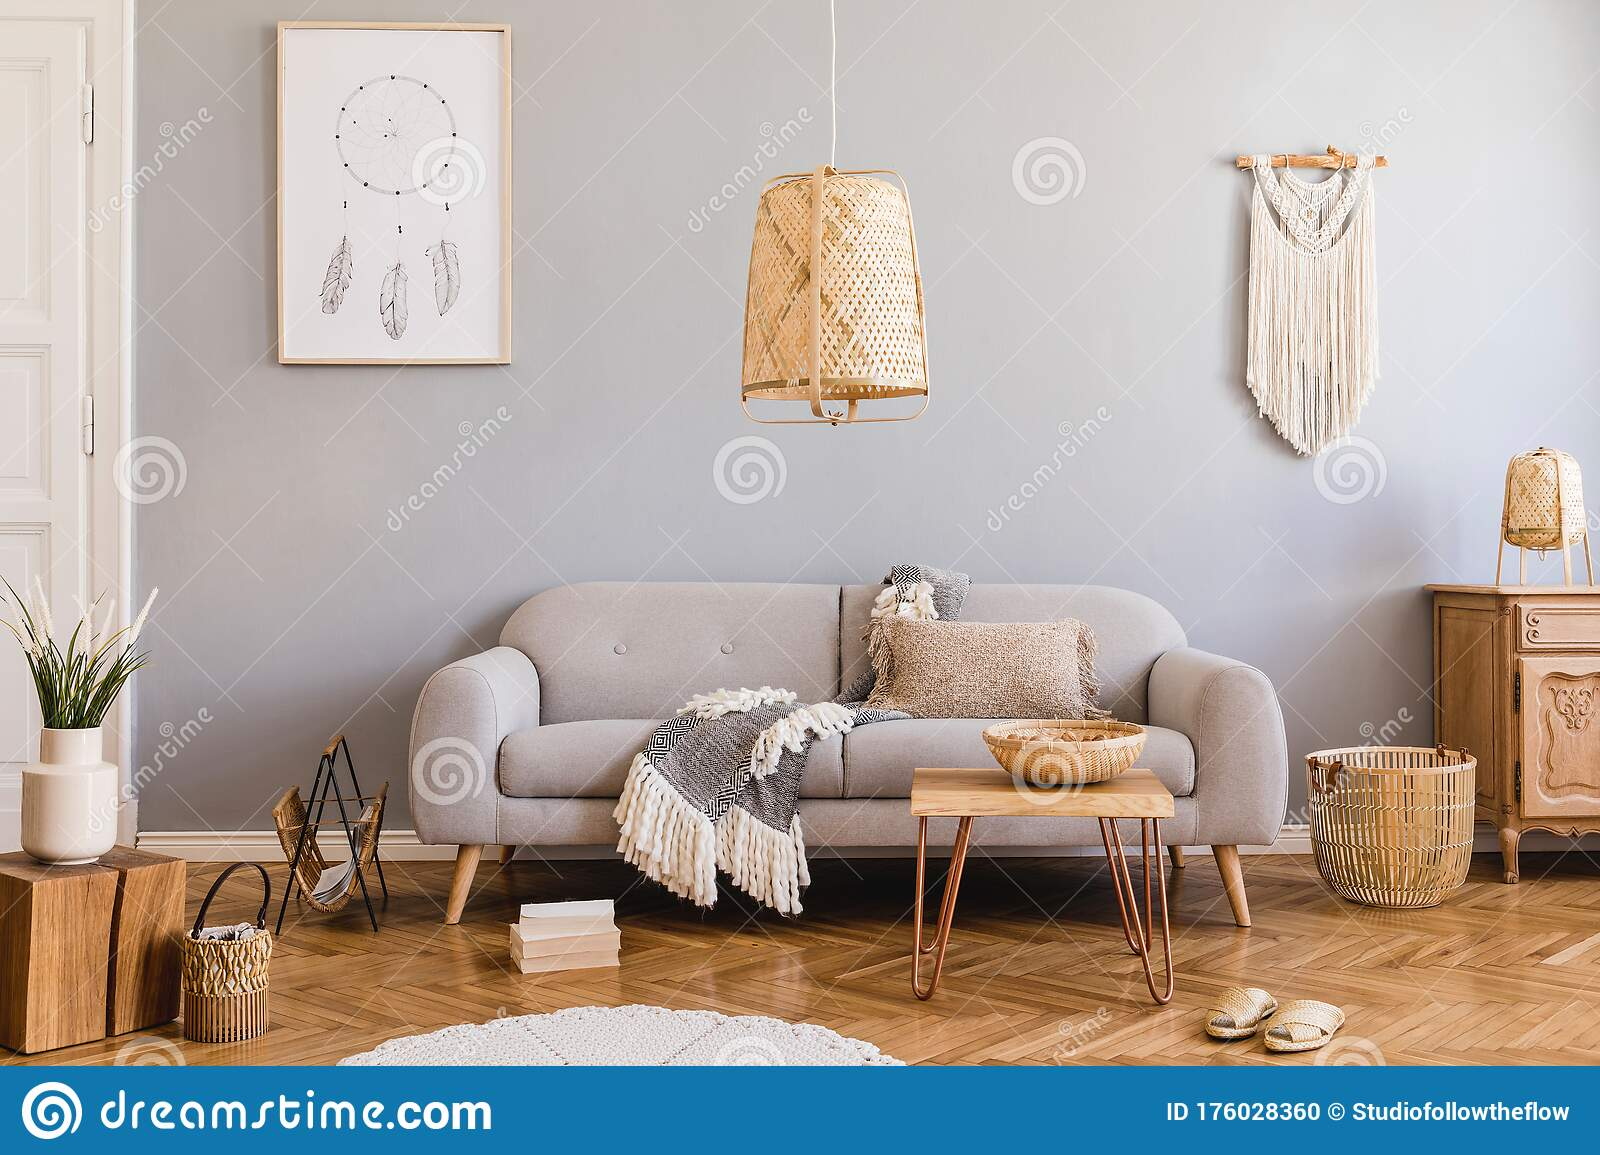 Boho Living Room With Grey Sofa And Natural Accessories Cosy Home Decor Stock Photo Image Of Inspiration Cosy 176028360